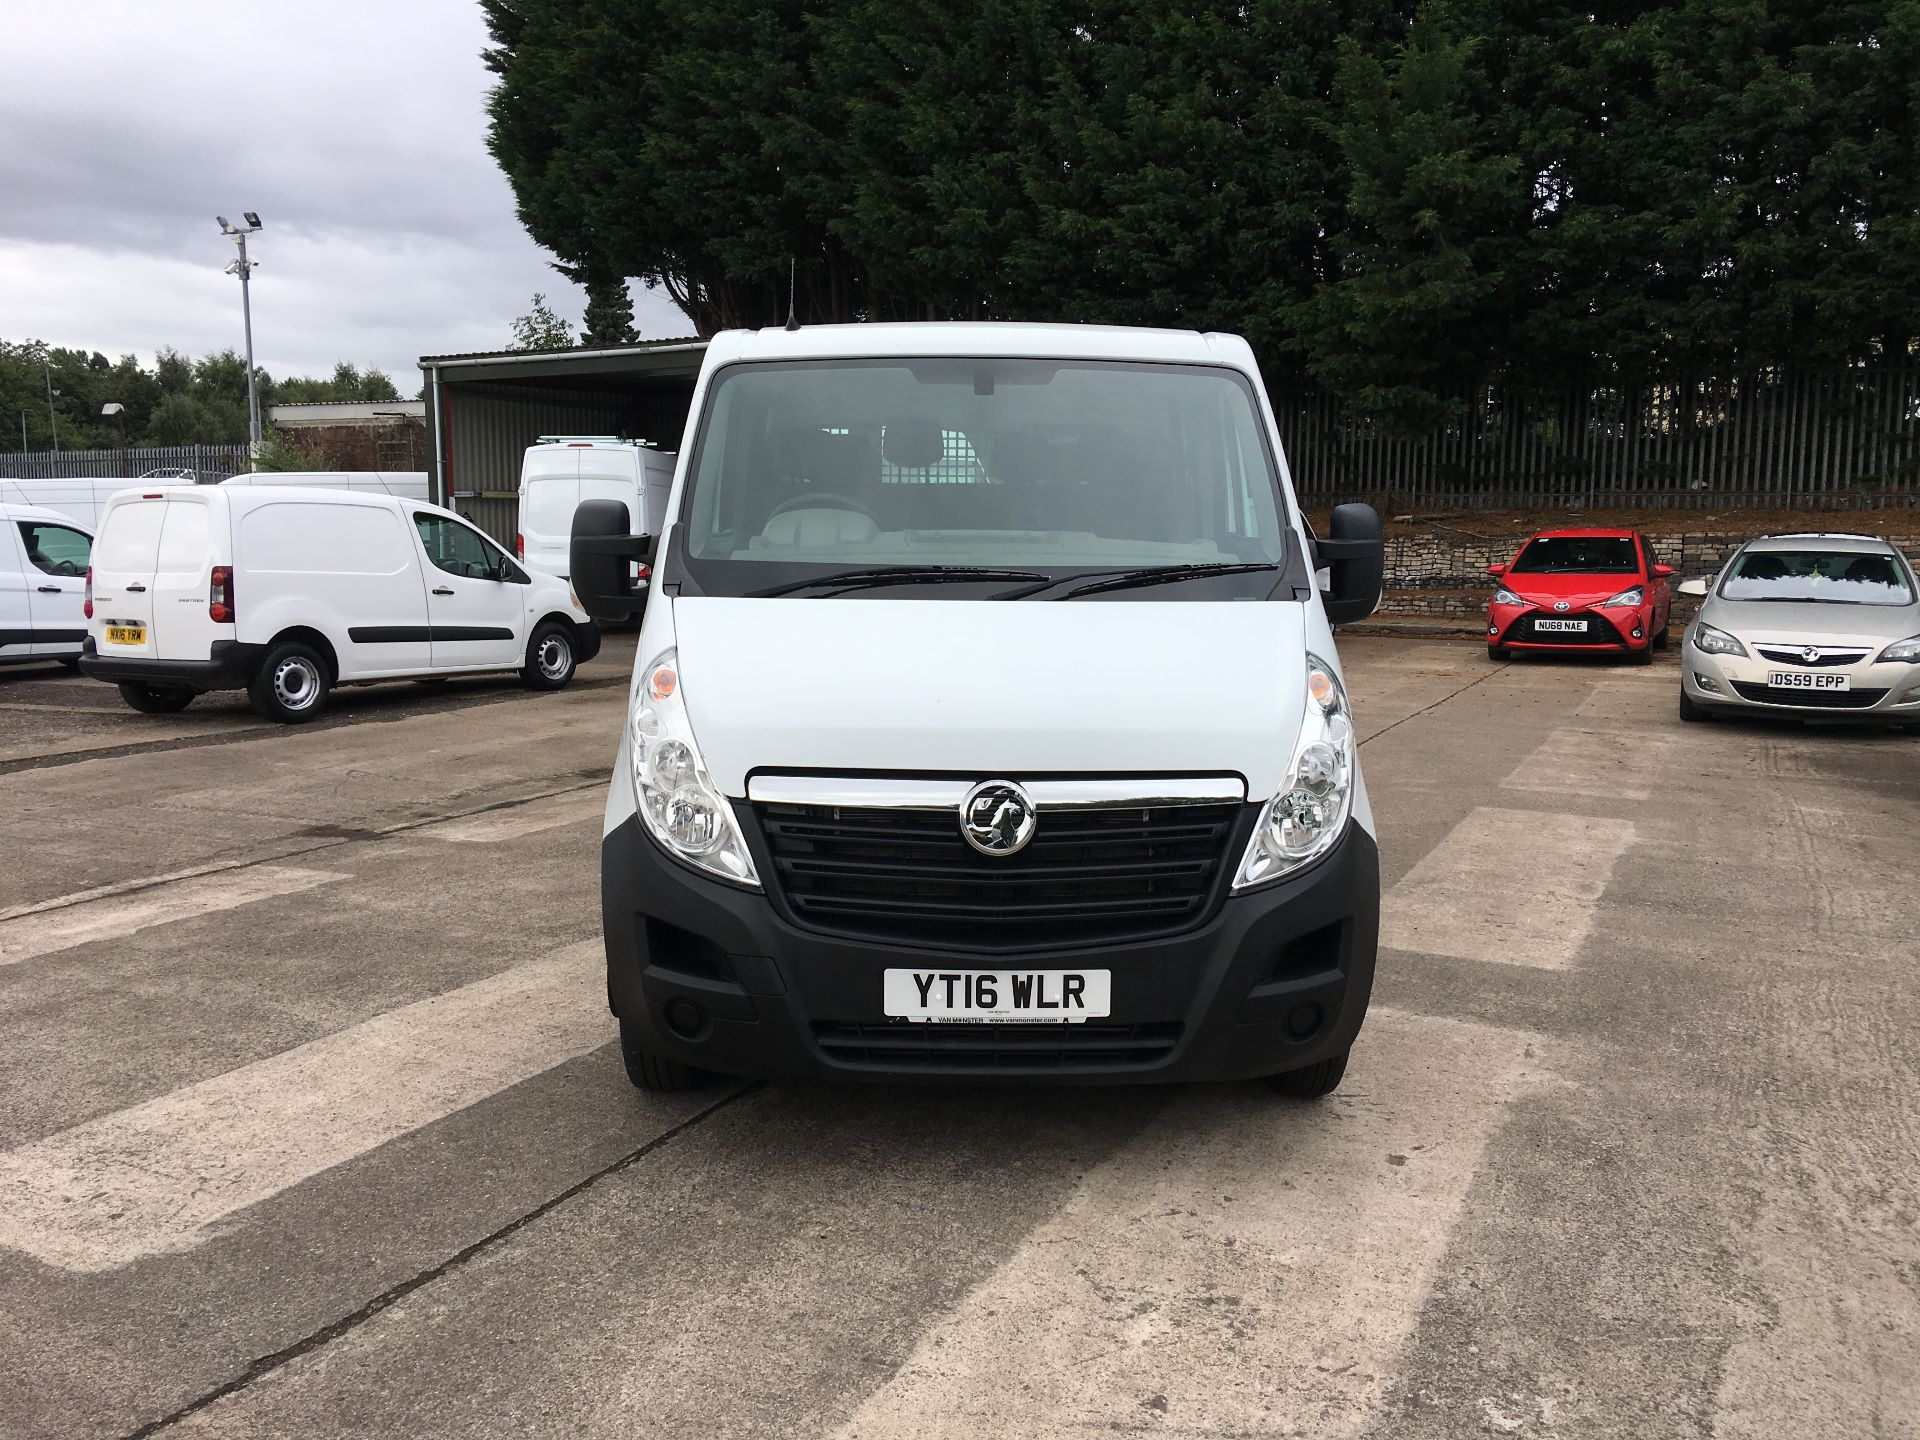 2016 Vauxhall Movano 35 L3 DIESEL RWD 2.3 CDTI 125PS D/CAB TIPPER EURO 5 (YT16WLR) Image 14